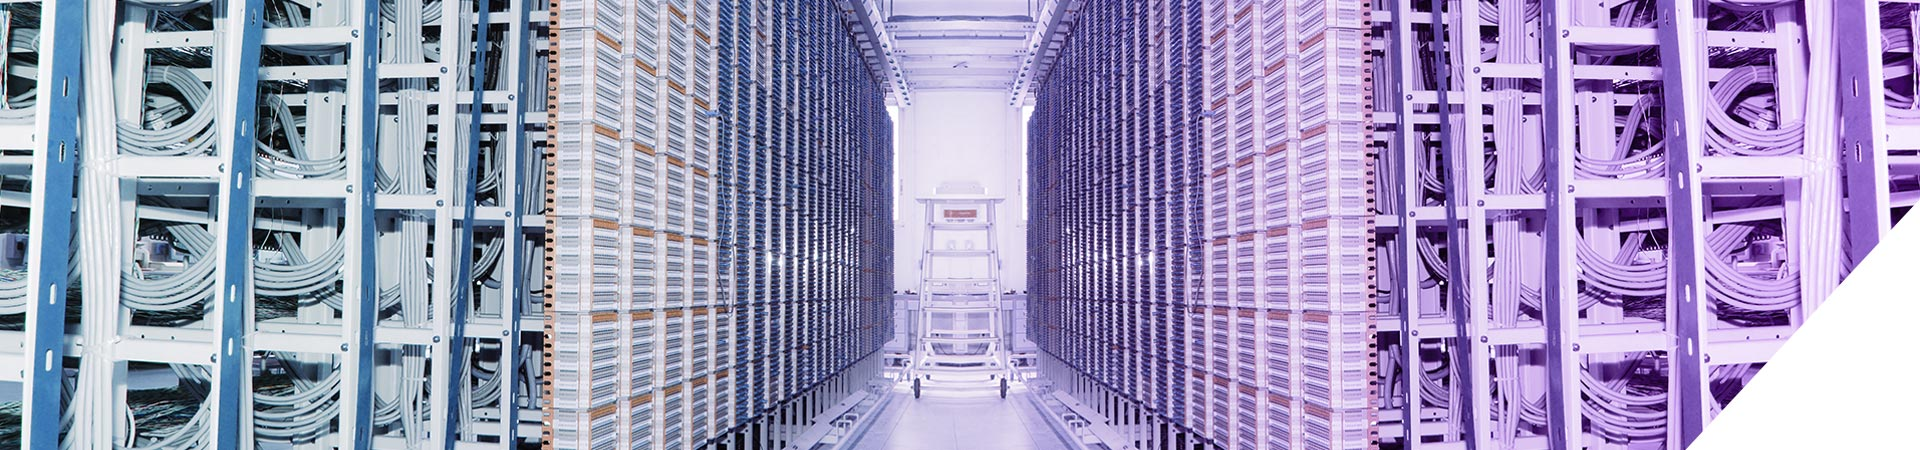 DATA CENTER TESTING AND BALANCING